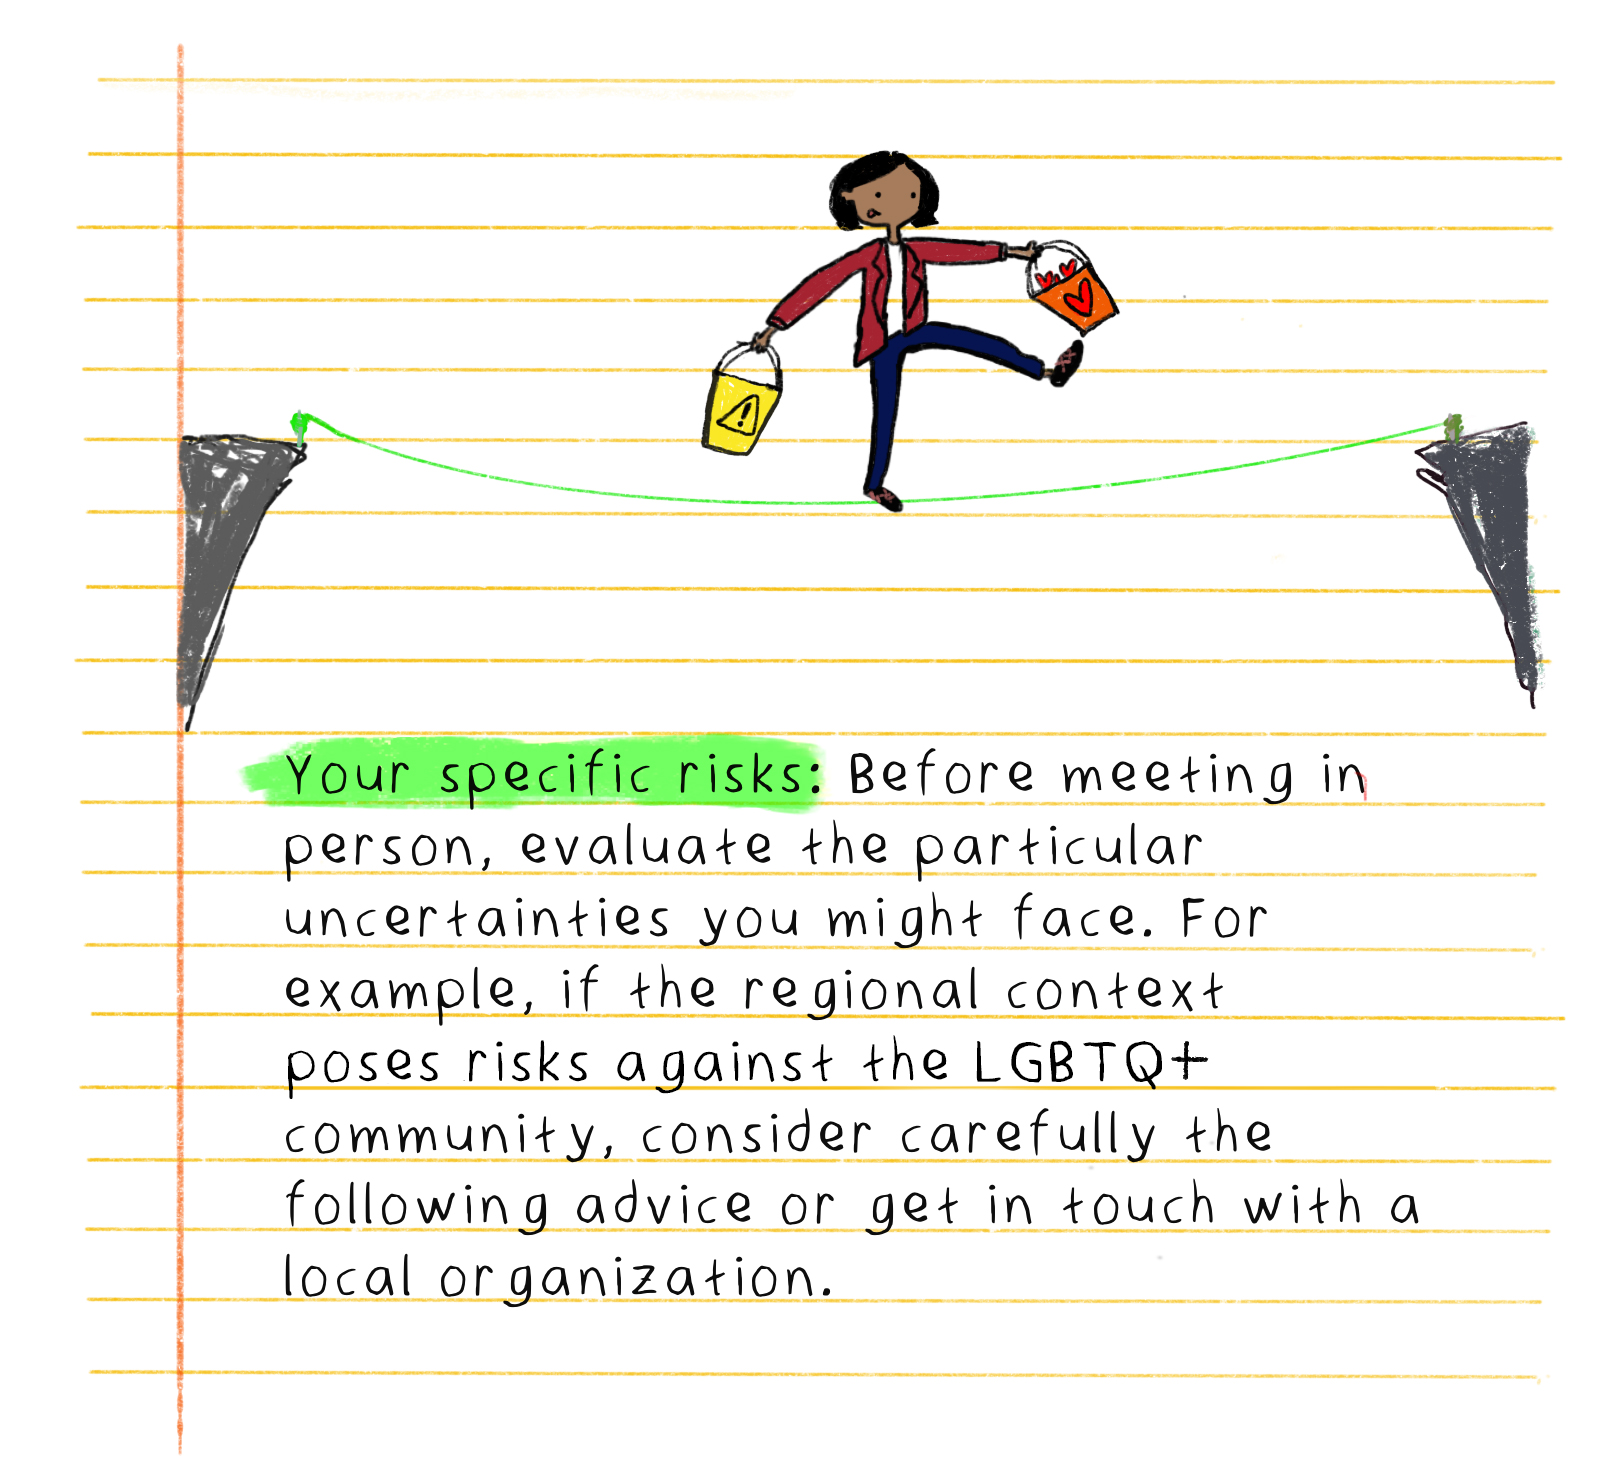 Your specific risks: Before meeting in person, evaluate the particular uncertainties you might face. For example, if the regional context poses risks against the LGBTQ+ community, consider carefully the following advice or get in touch with a local organization.